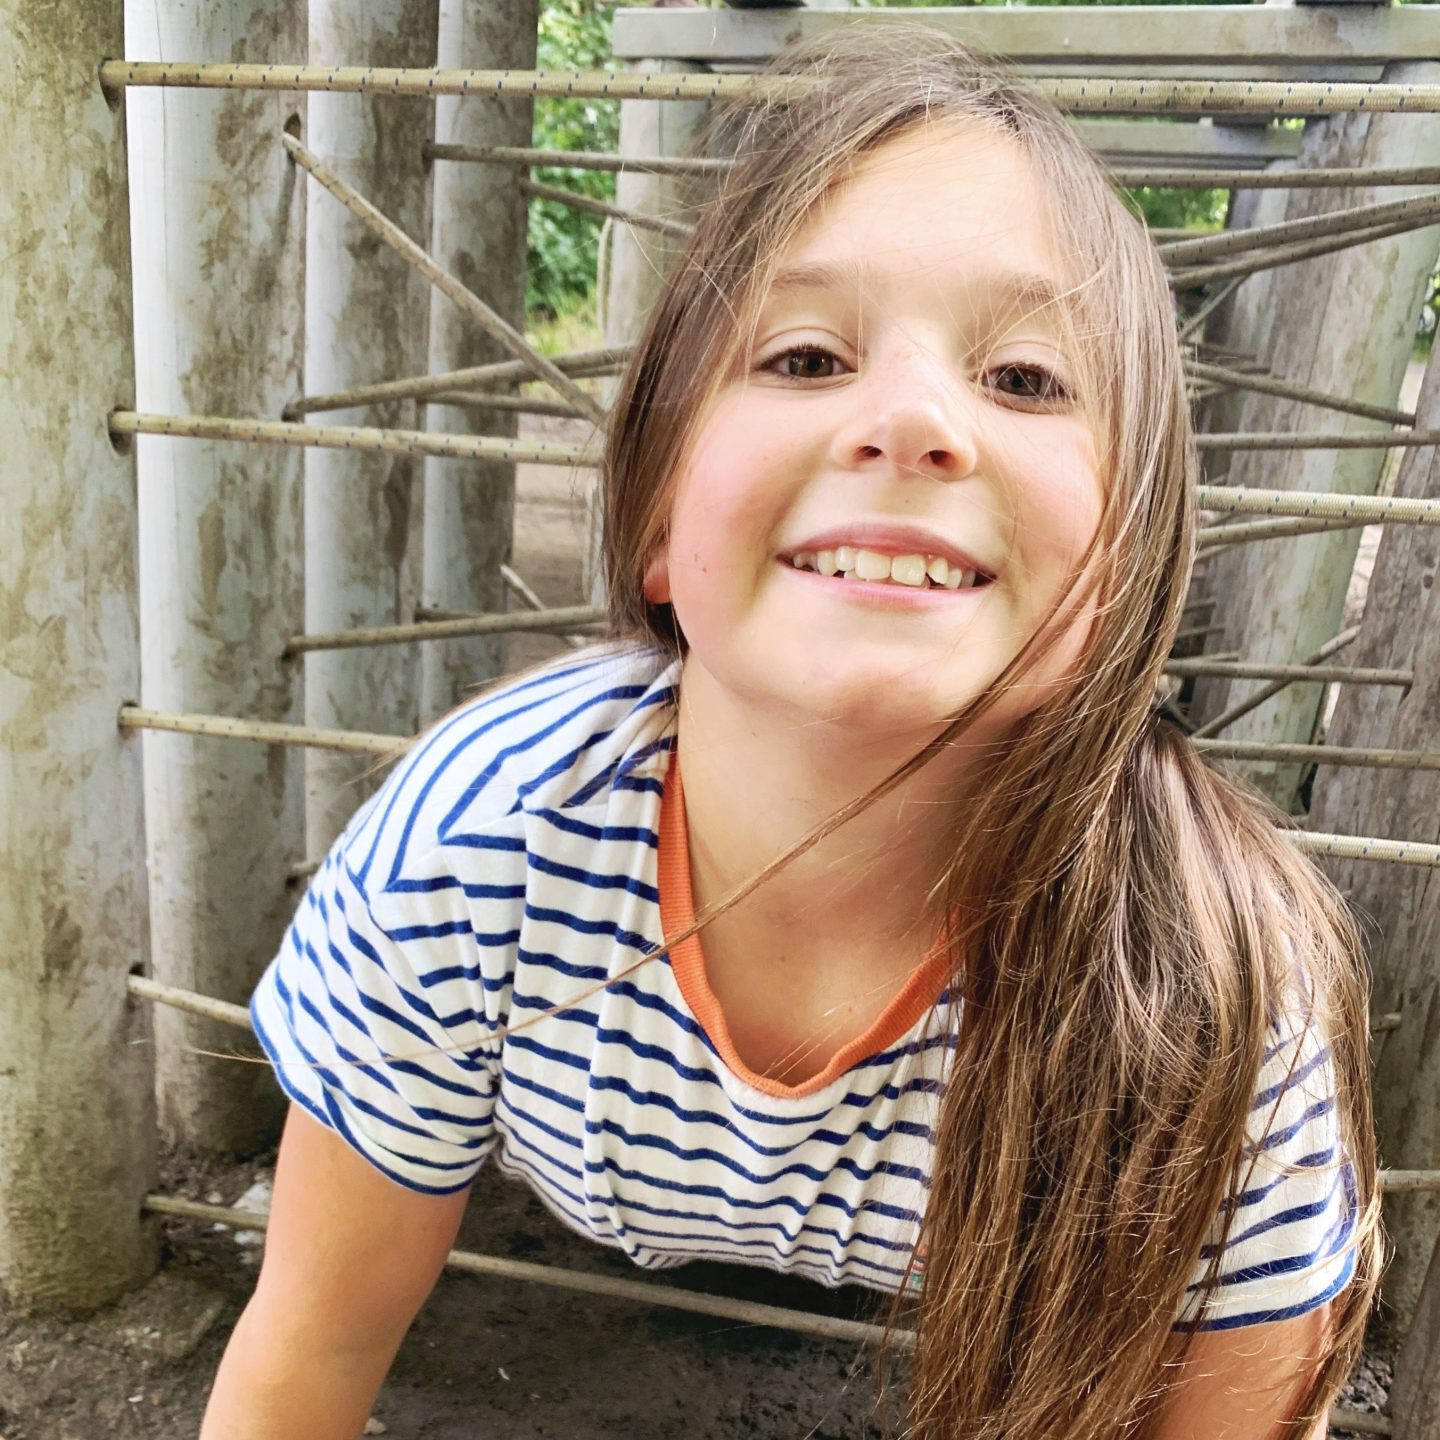 A young girl grinning at the camera on her last week of summer